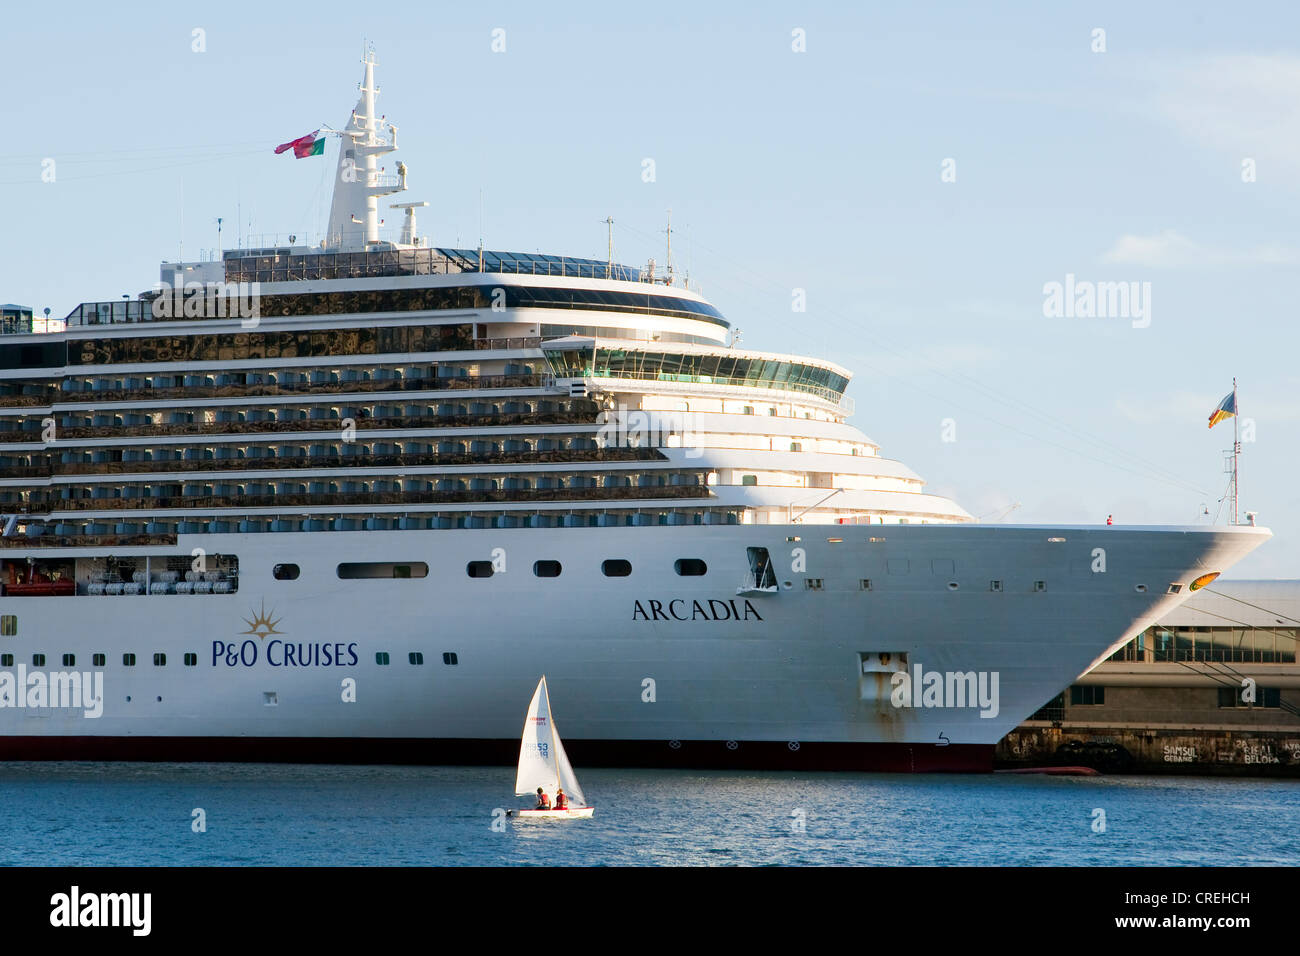 Small sail boat off the cruise ship Arcadia in the marina, Funchal, Madeira, Portugal, Europe - Stock Image